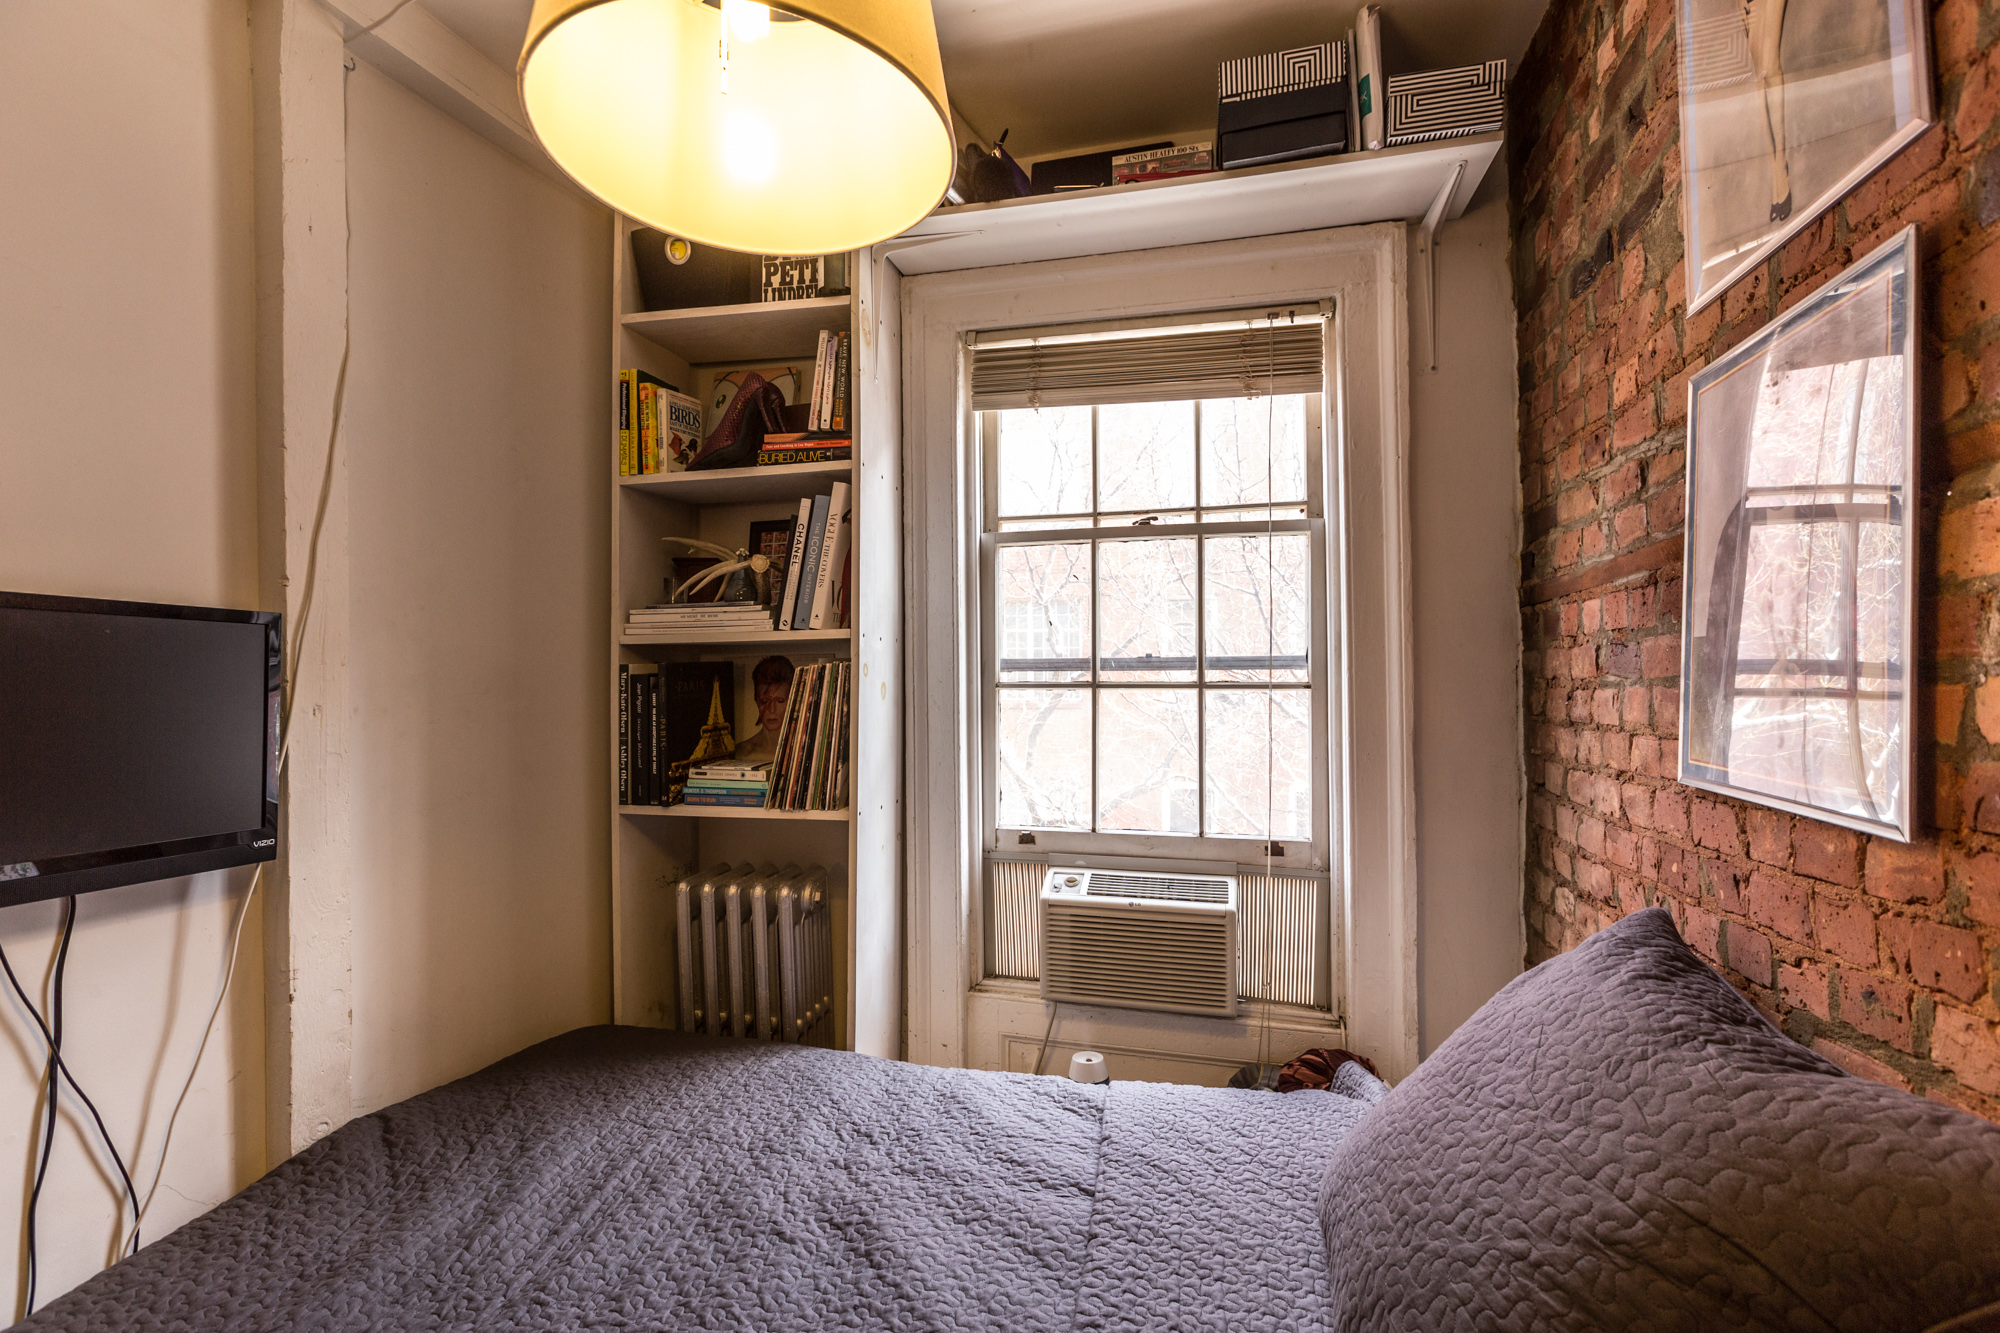 100 square feet room - How One New Yorker Lives Comfortably In 90 Square Feet How One New Yorker Lives